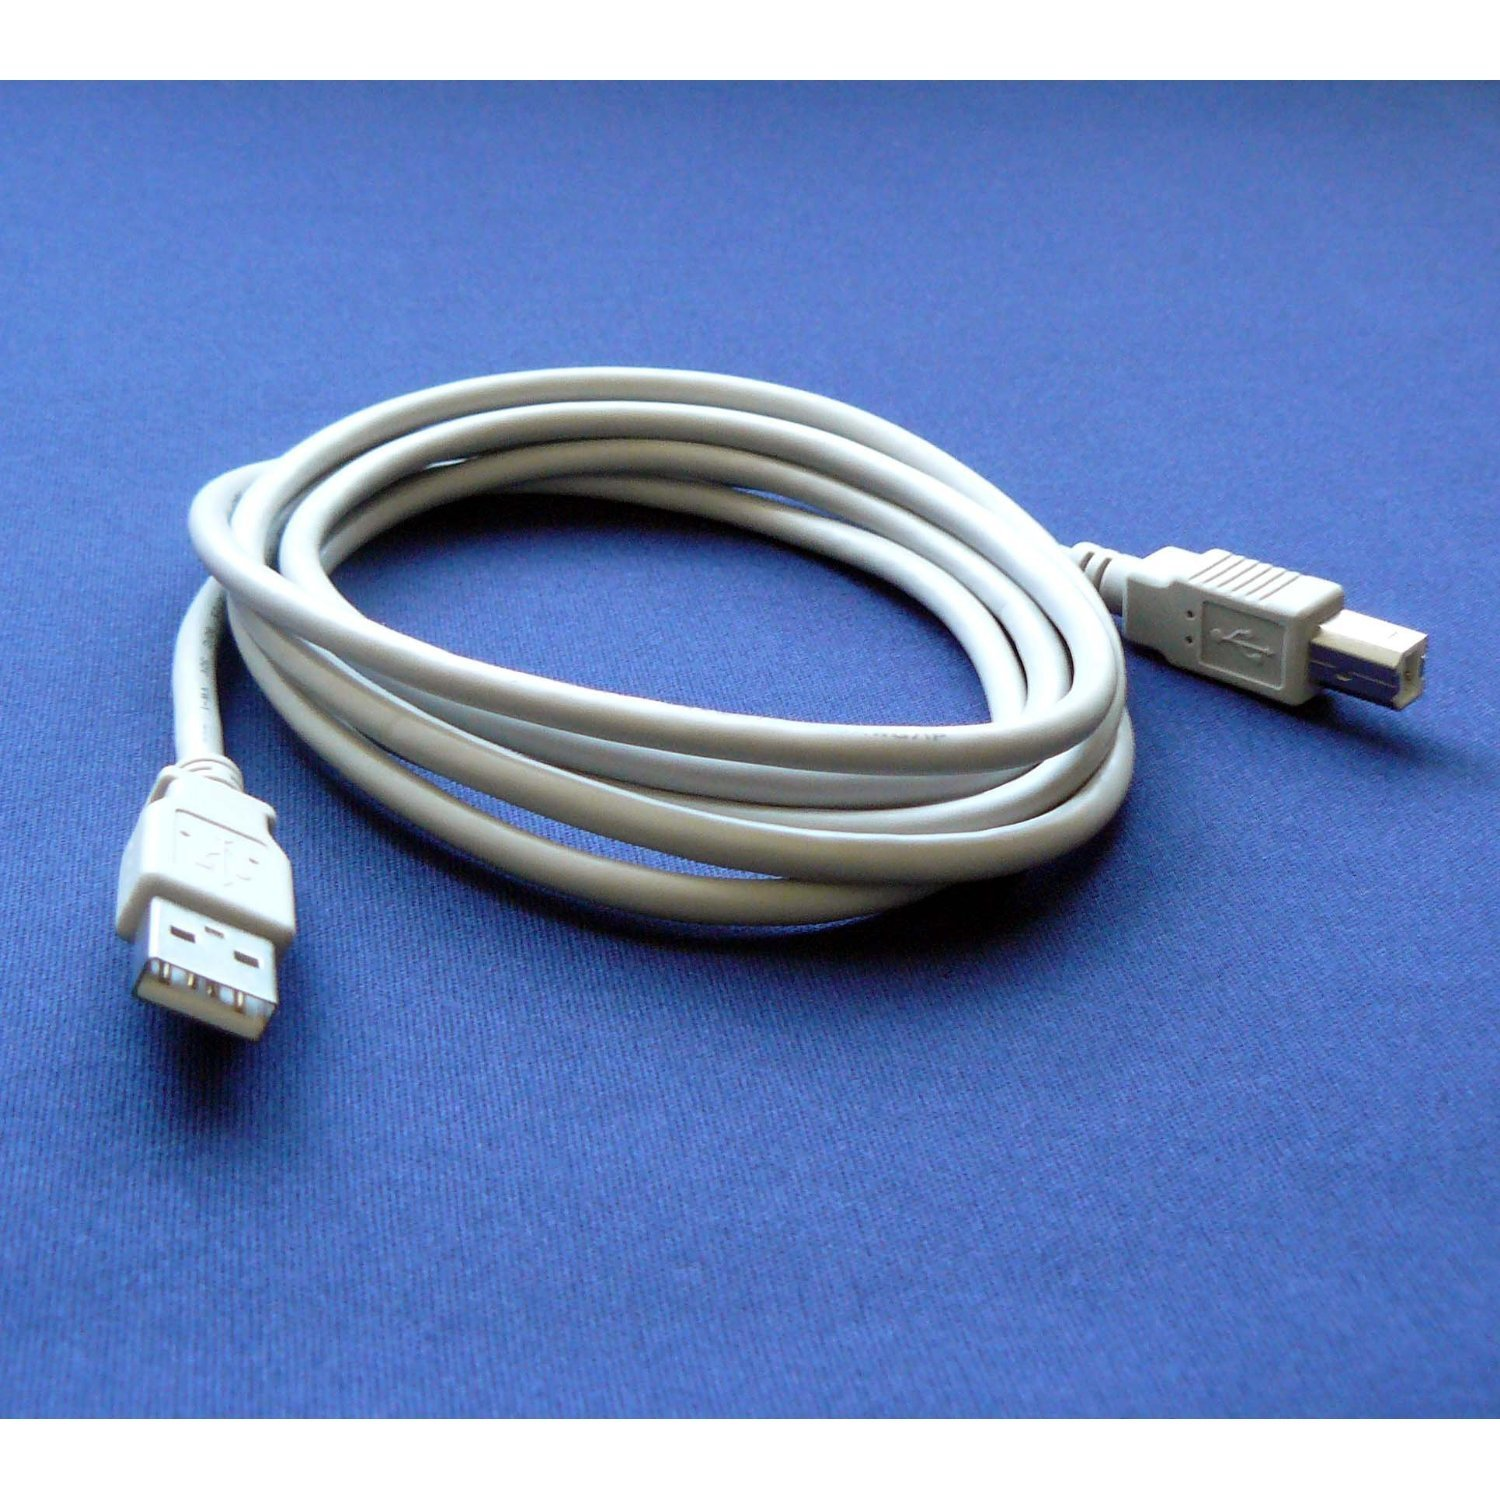 Primary image for HP Officejet 6500 Inkjet Printer Compatible USB 2.0 Cable Cord for PC, Notebo...